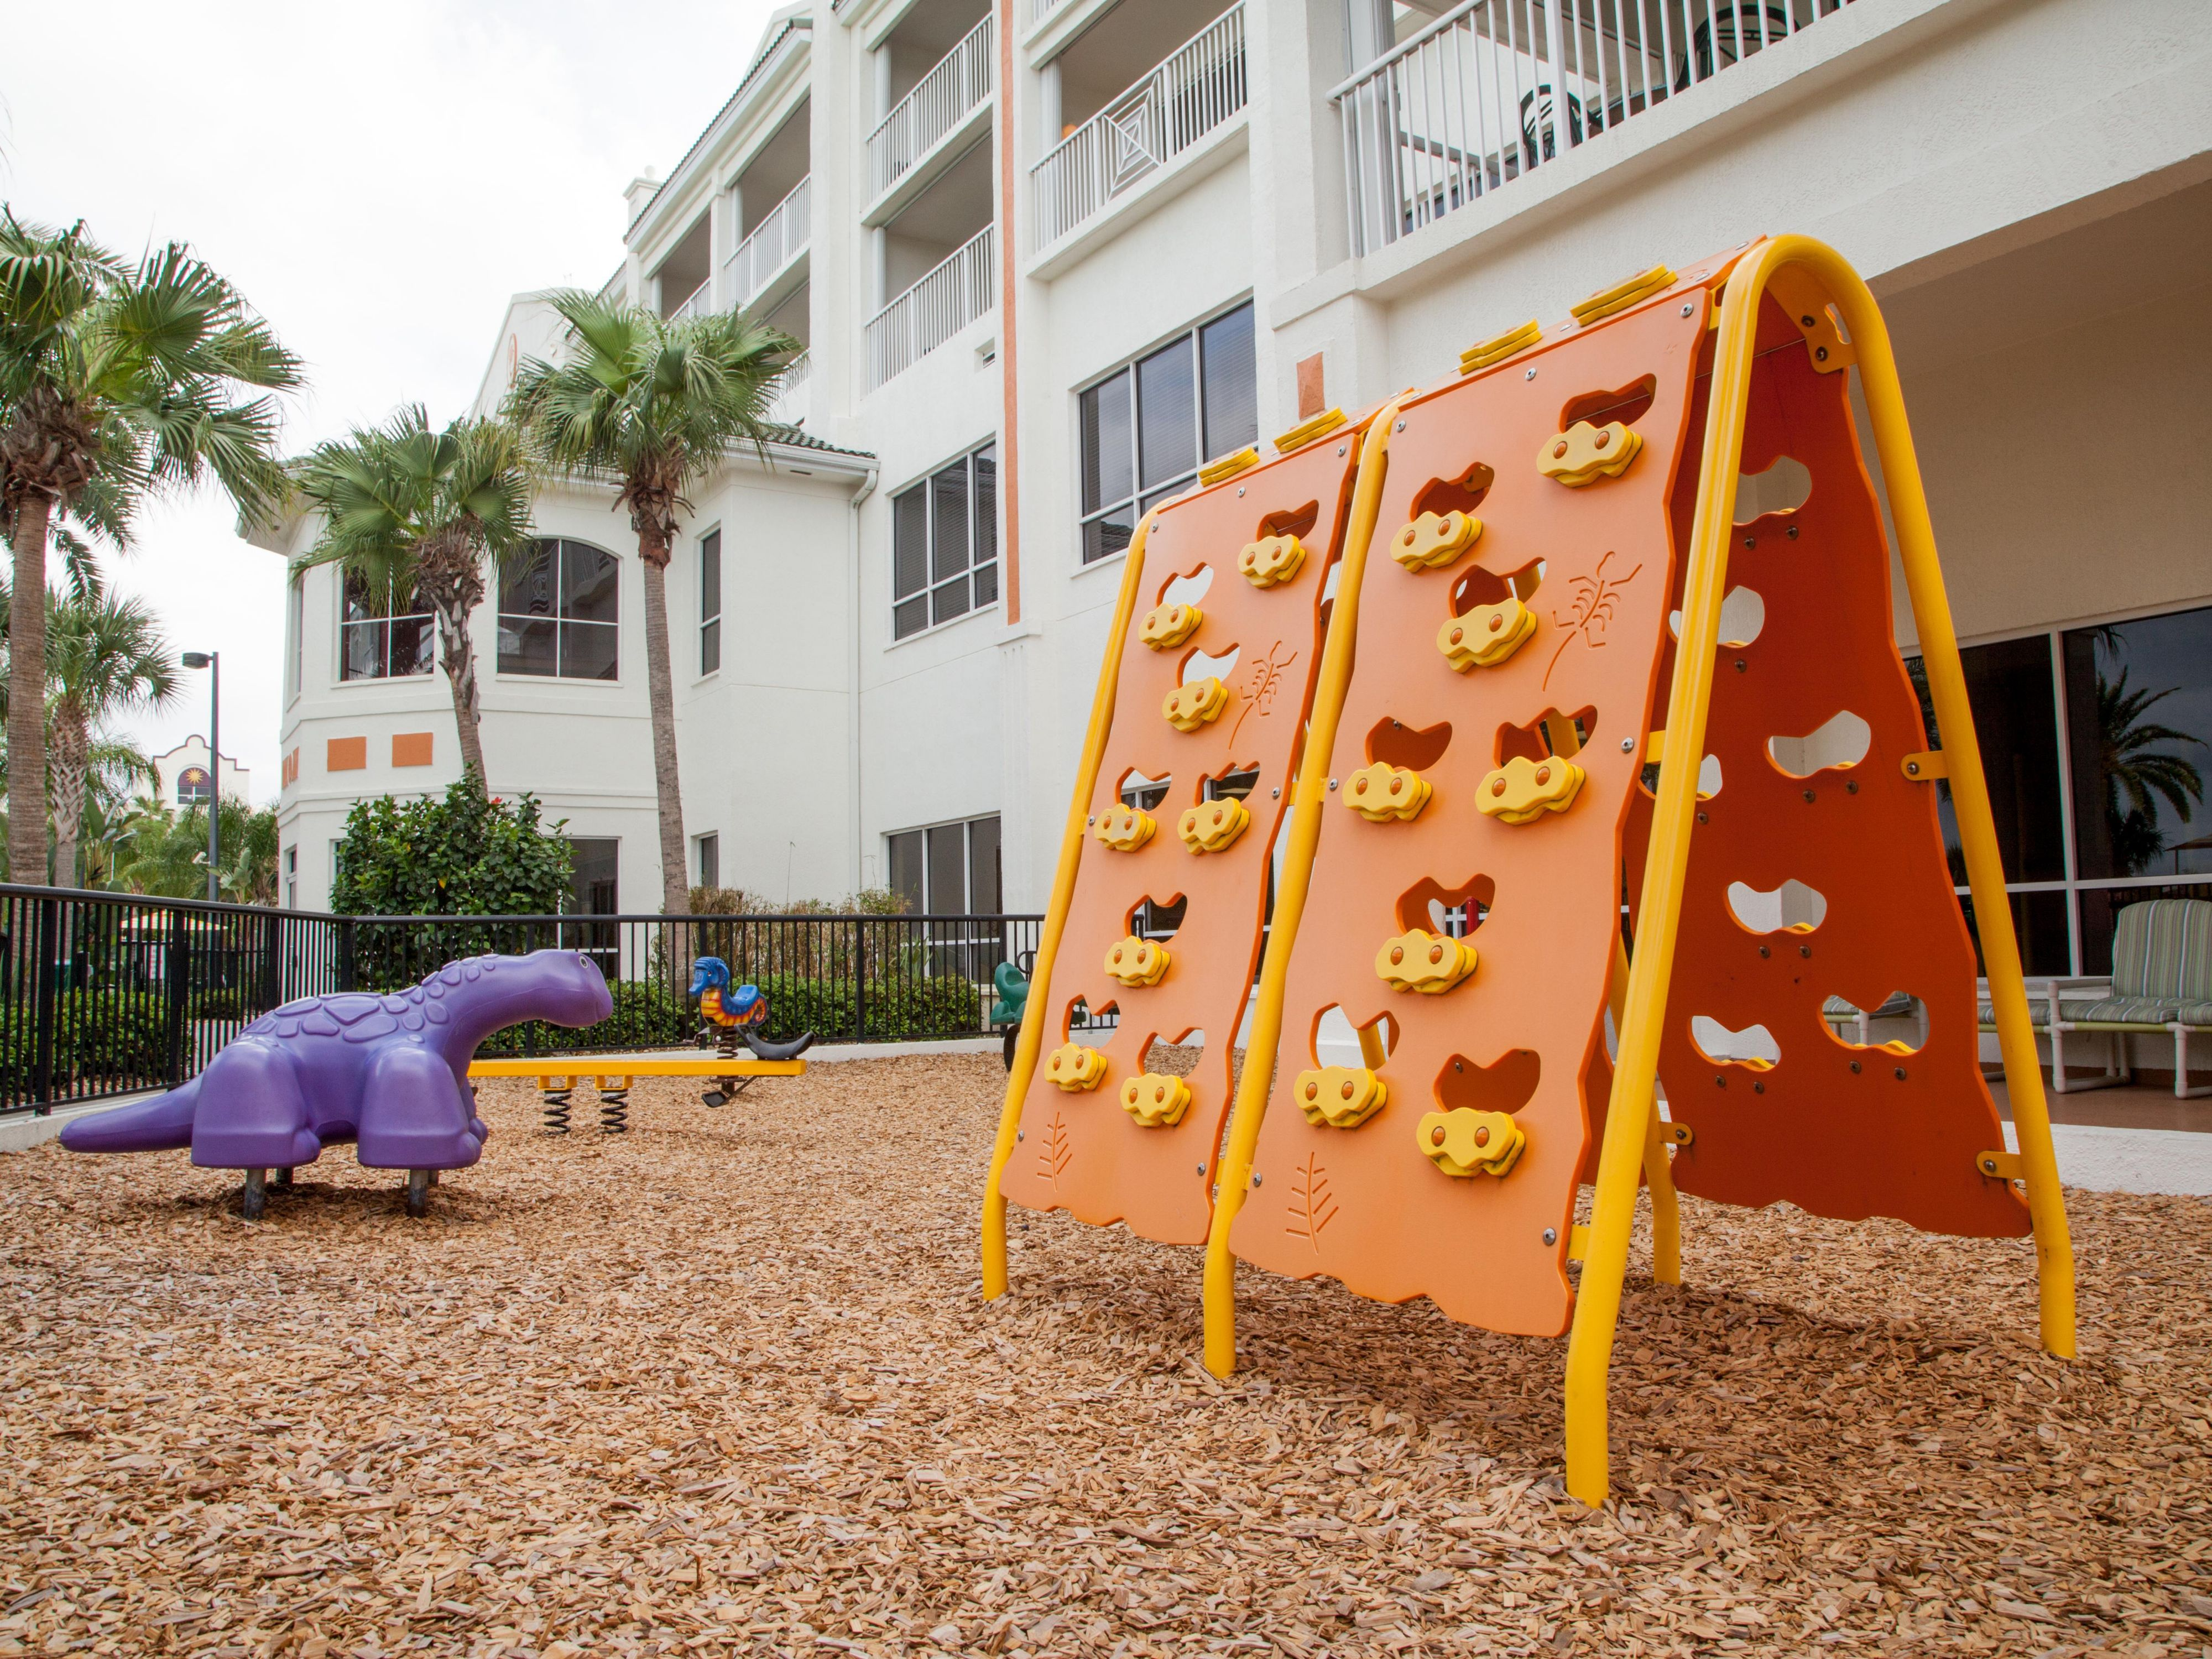 Children can have fun at the outdoor playground